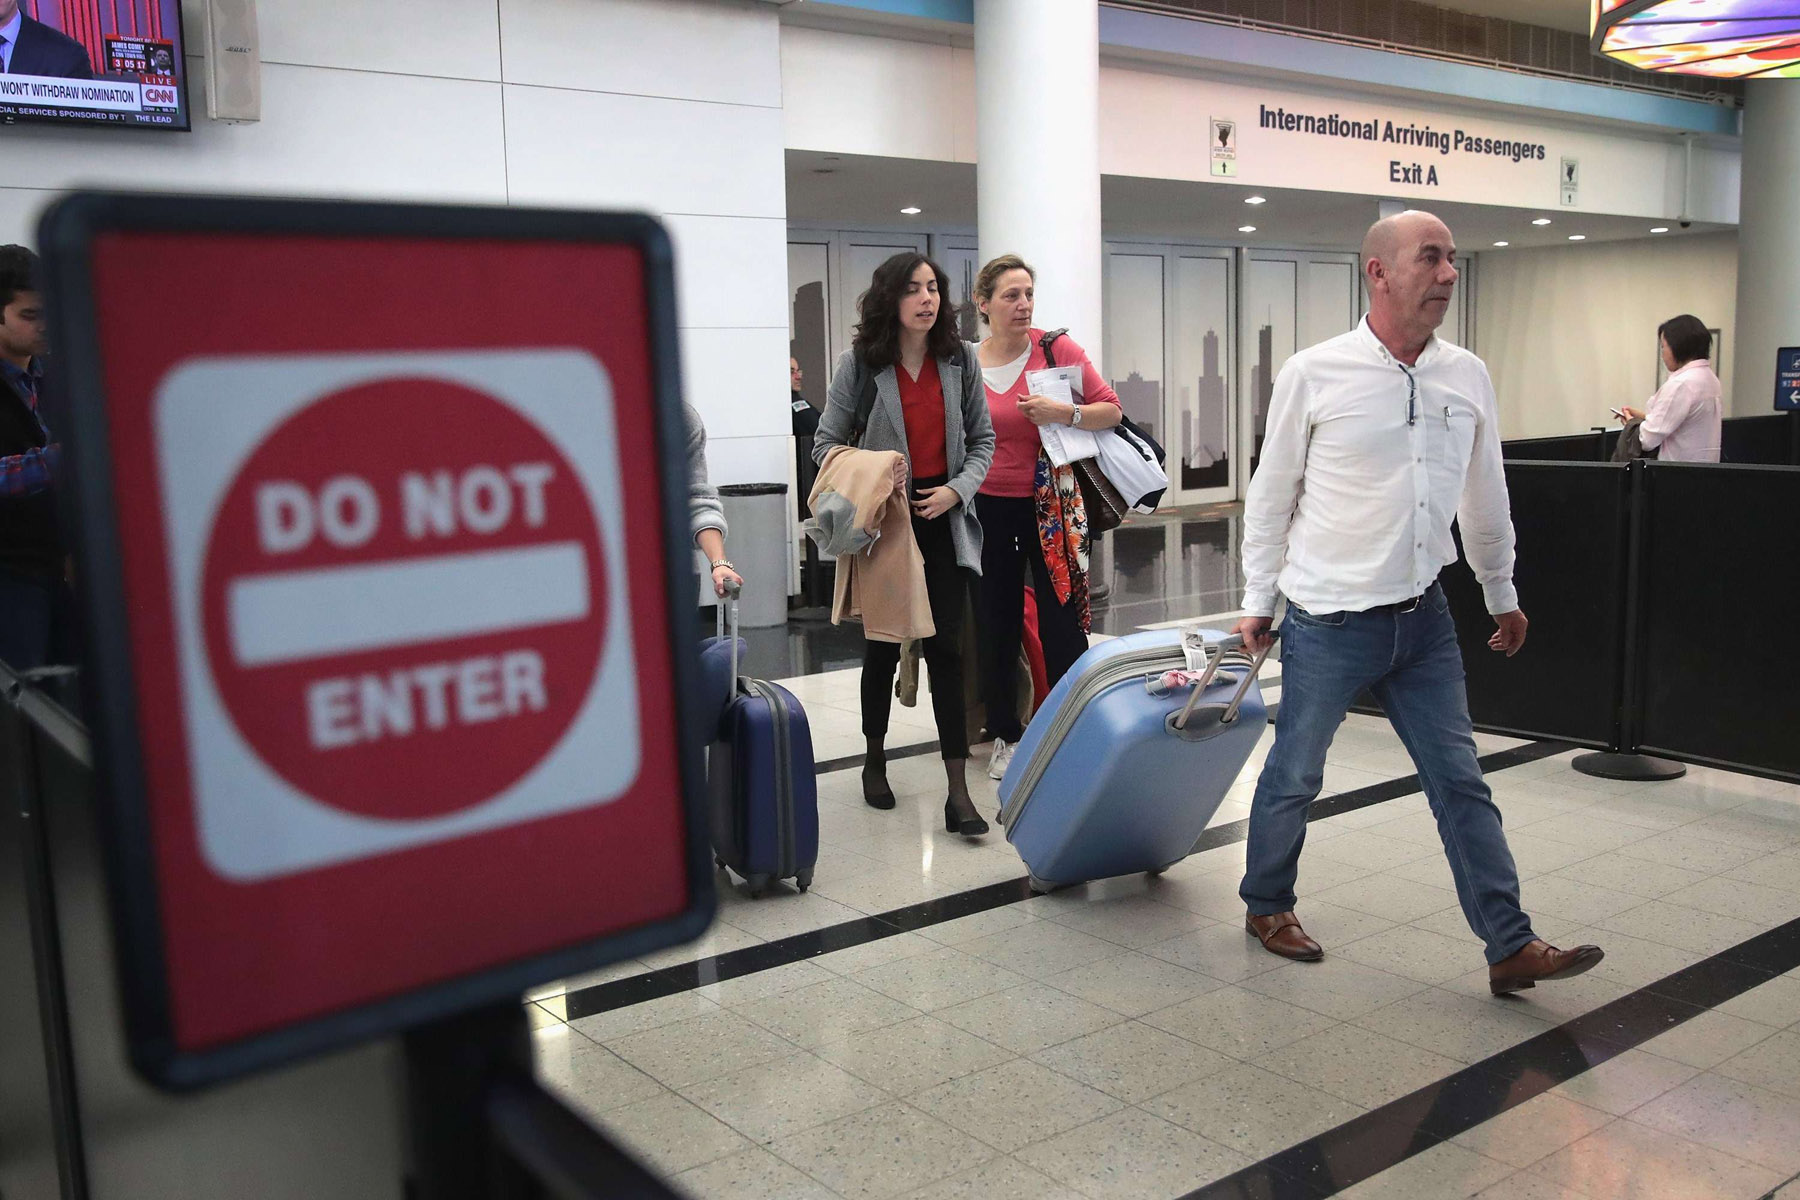 Travellers arrive at the international terminal of O'Hare International Airport in Chicago. (AFP)